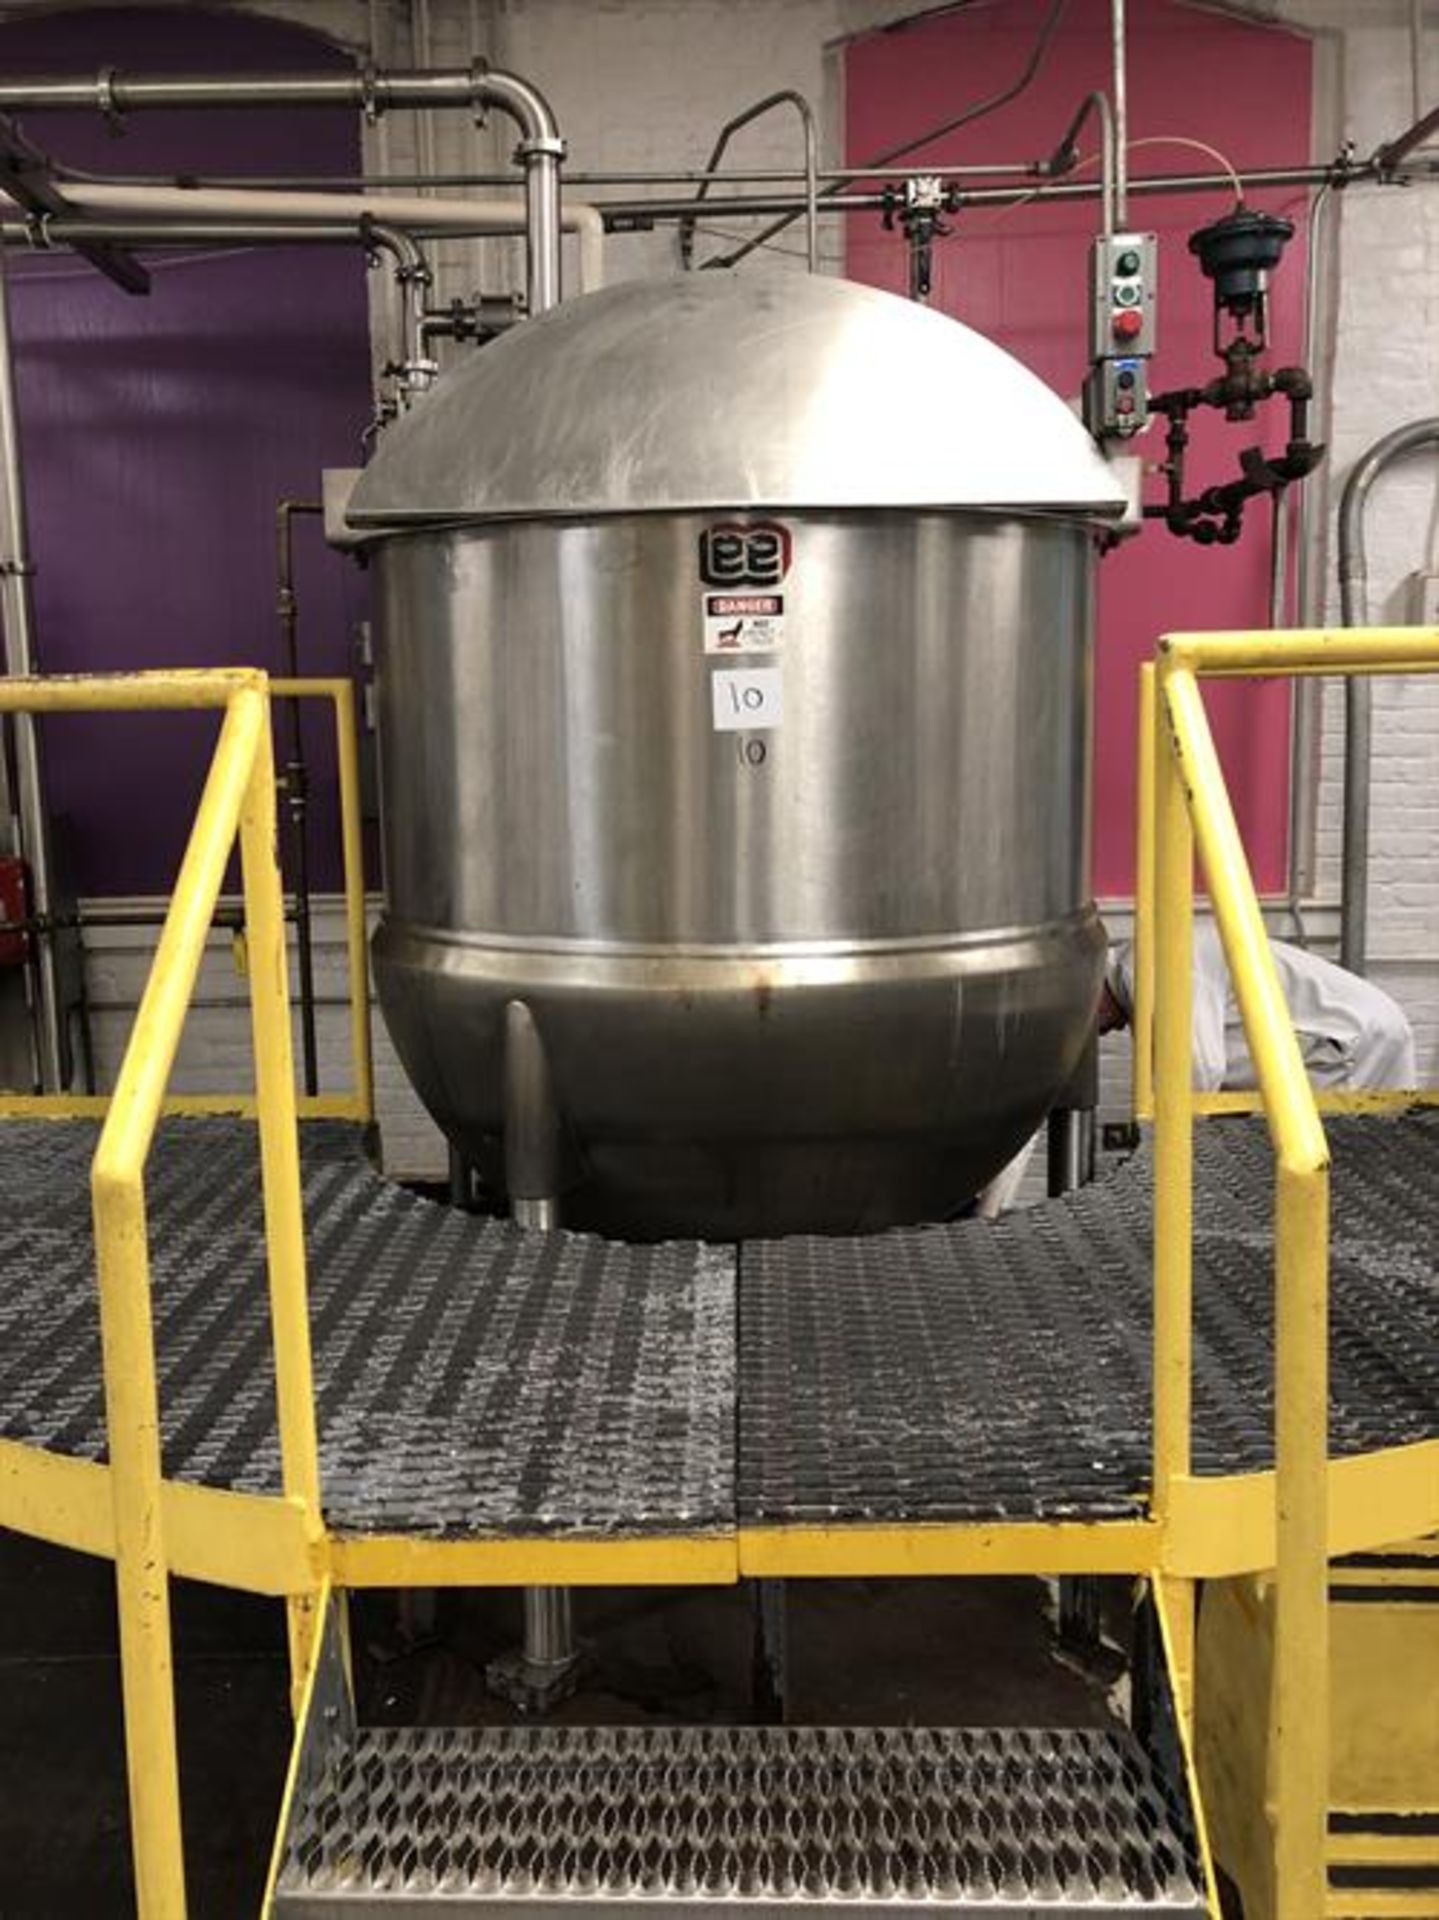 Lot 3 - Lee model 250D7S 250 gallon Single Action Stainless Steel Cooking and Mixing kettle